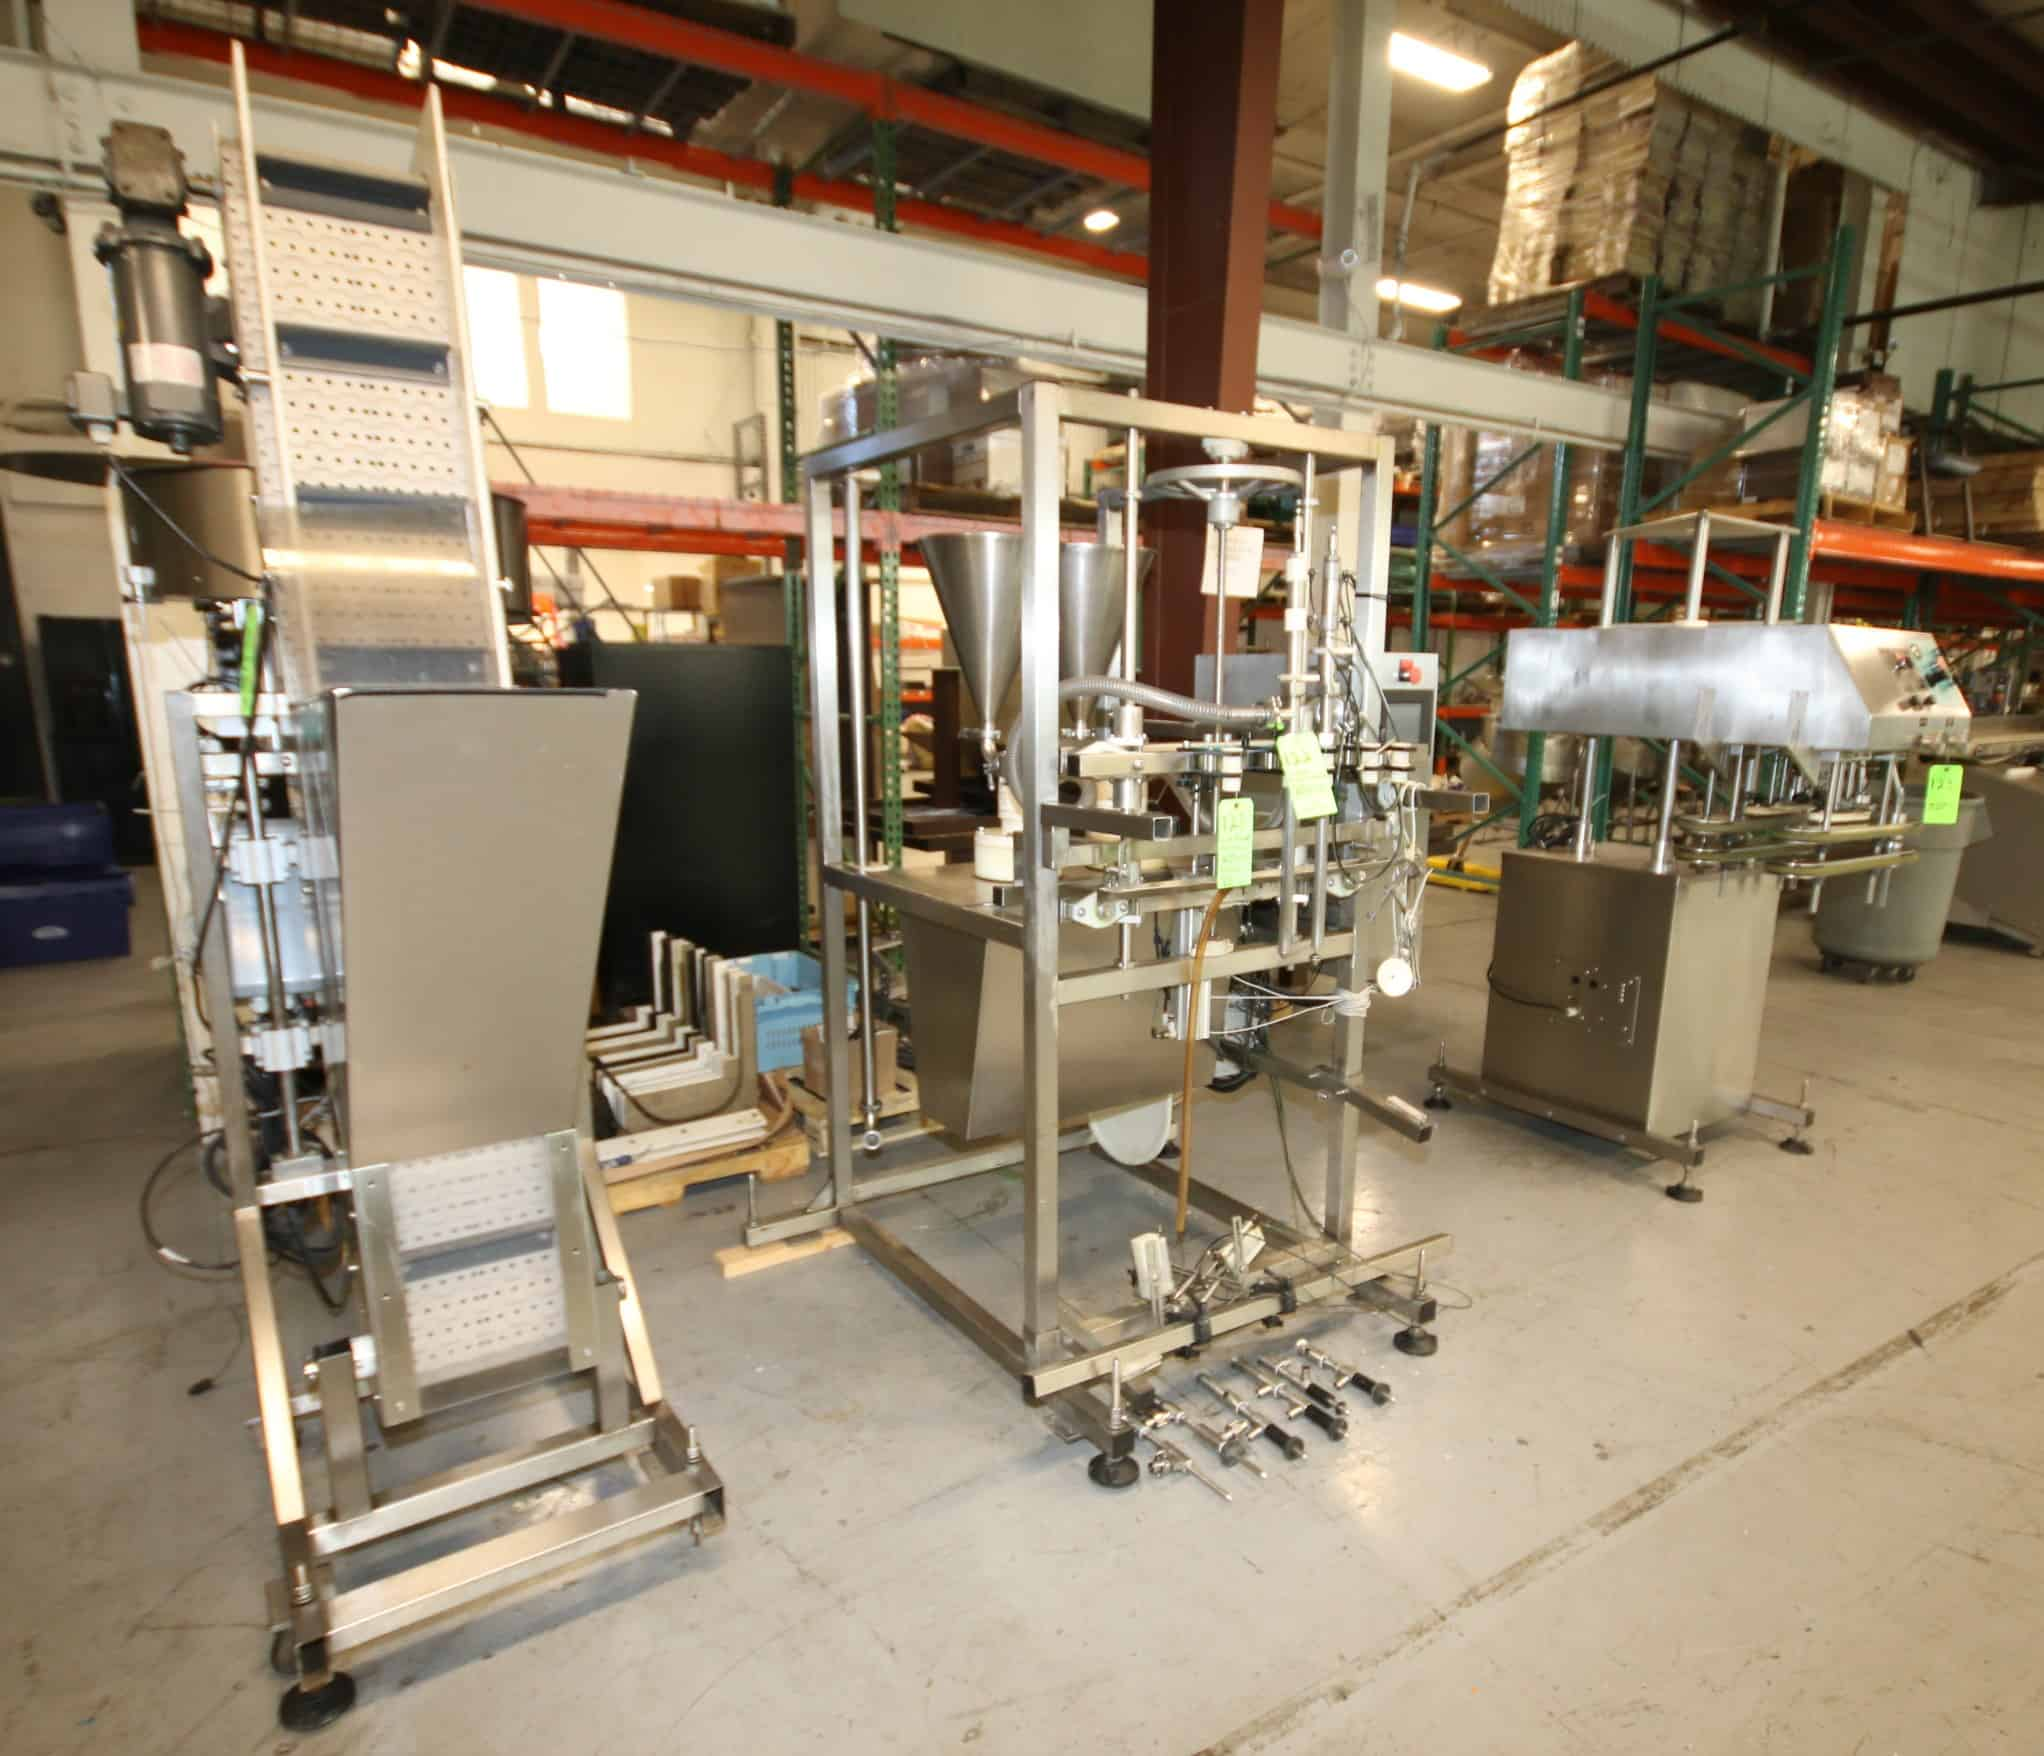 JAR FILLING LINE INCLUDES INLINE FILLING SYSTEMS FILLER, CAP FEED HOPPER WITH CAPPER